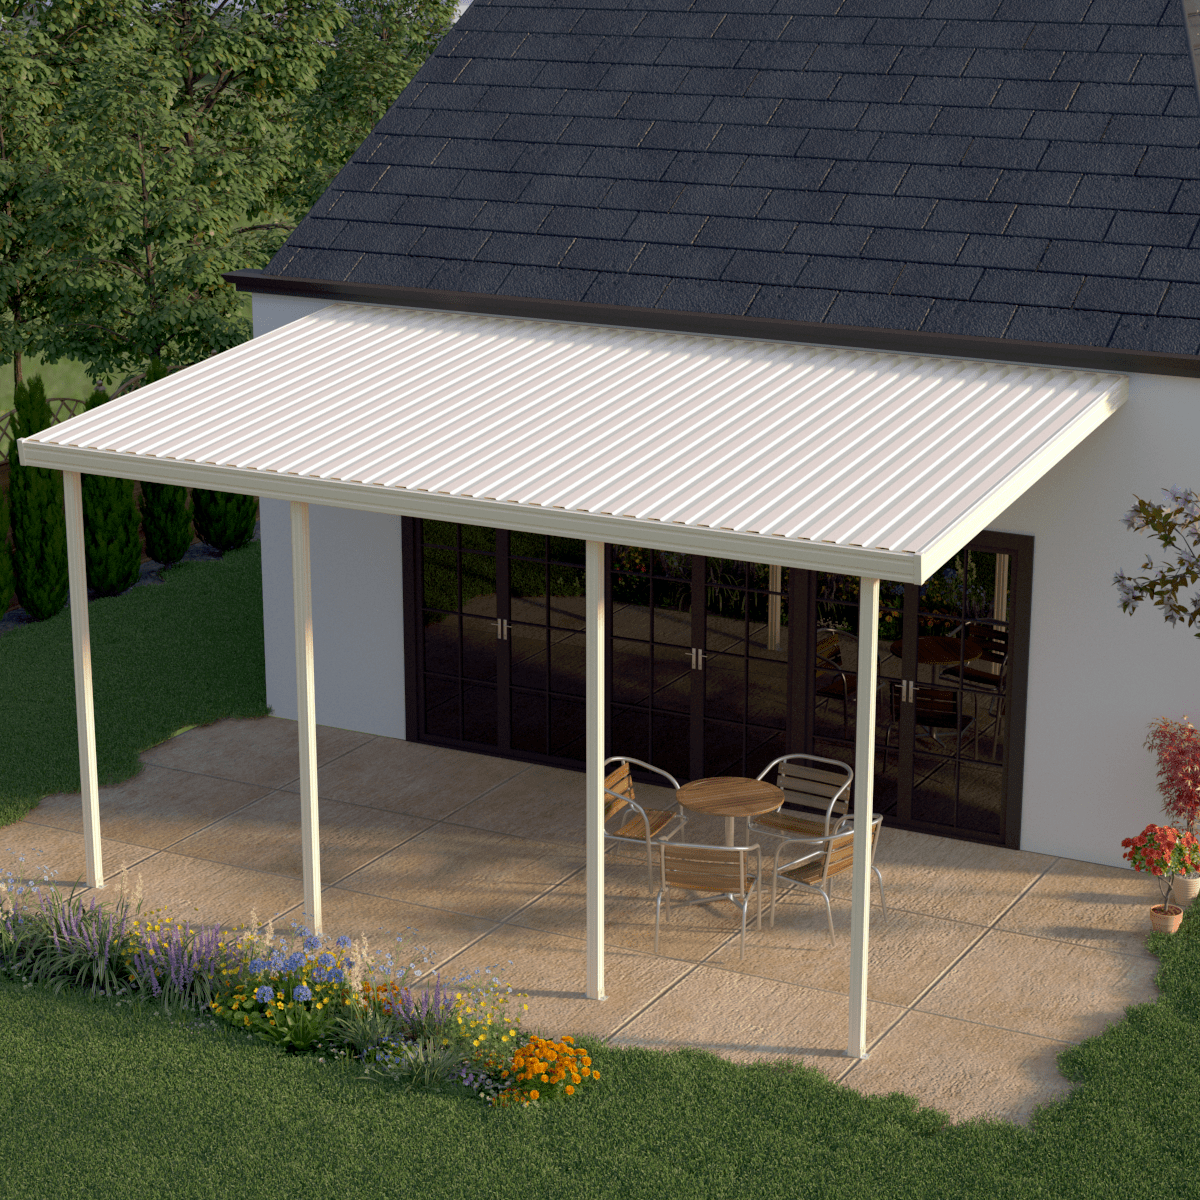 Heritage Patios 18' X 10' Attached Aluminum Awning - Tan